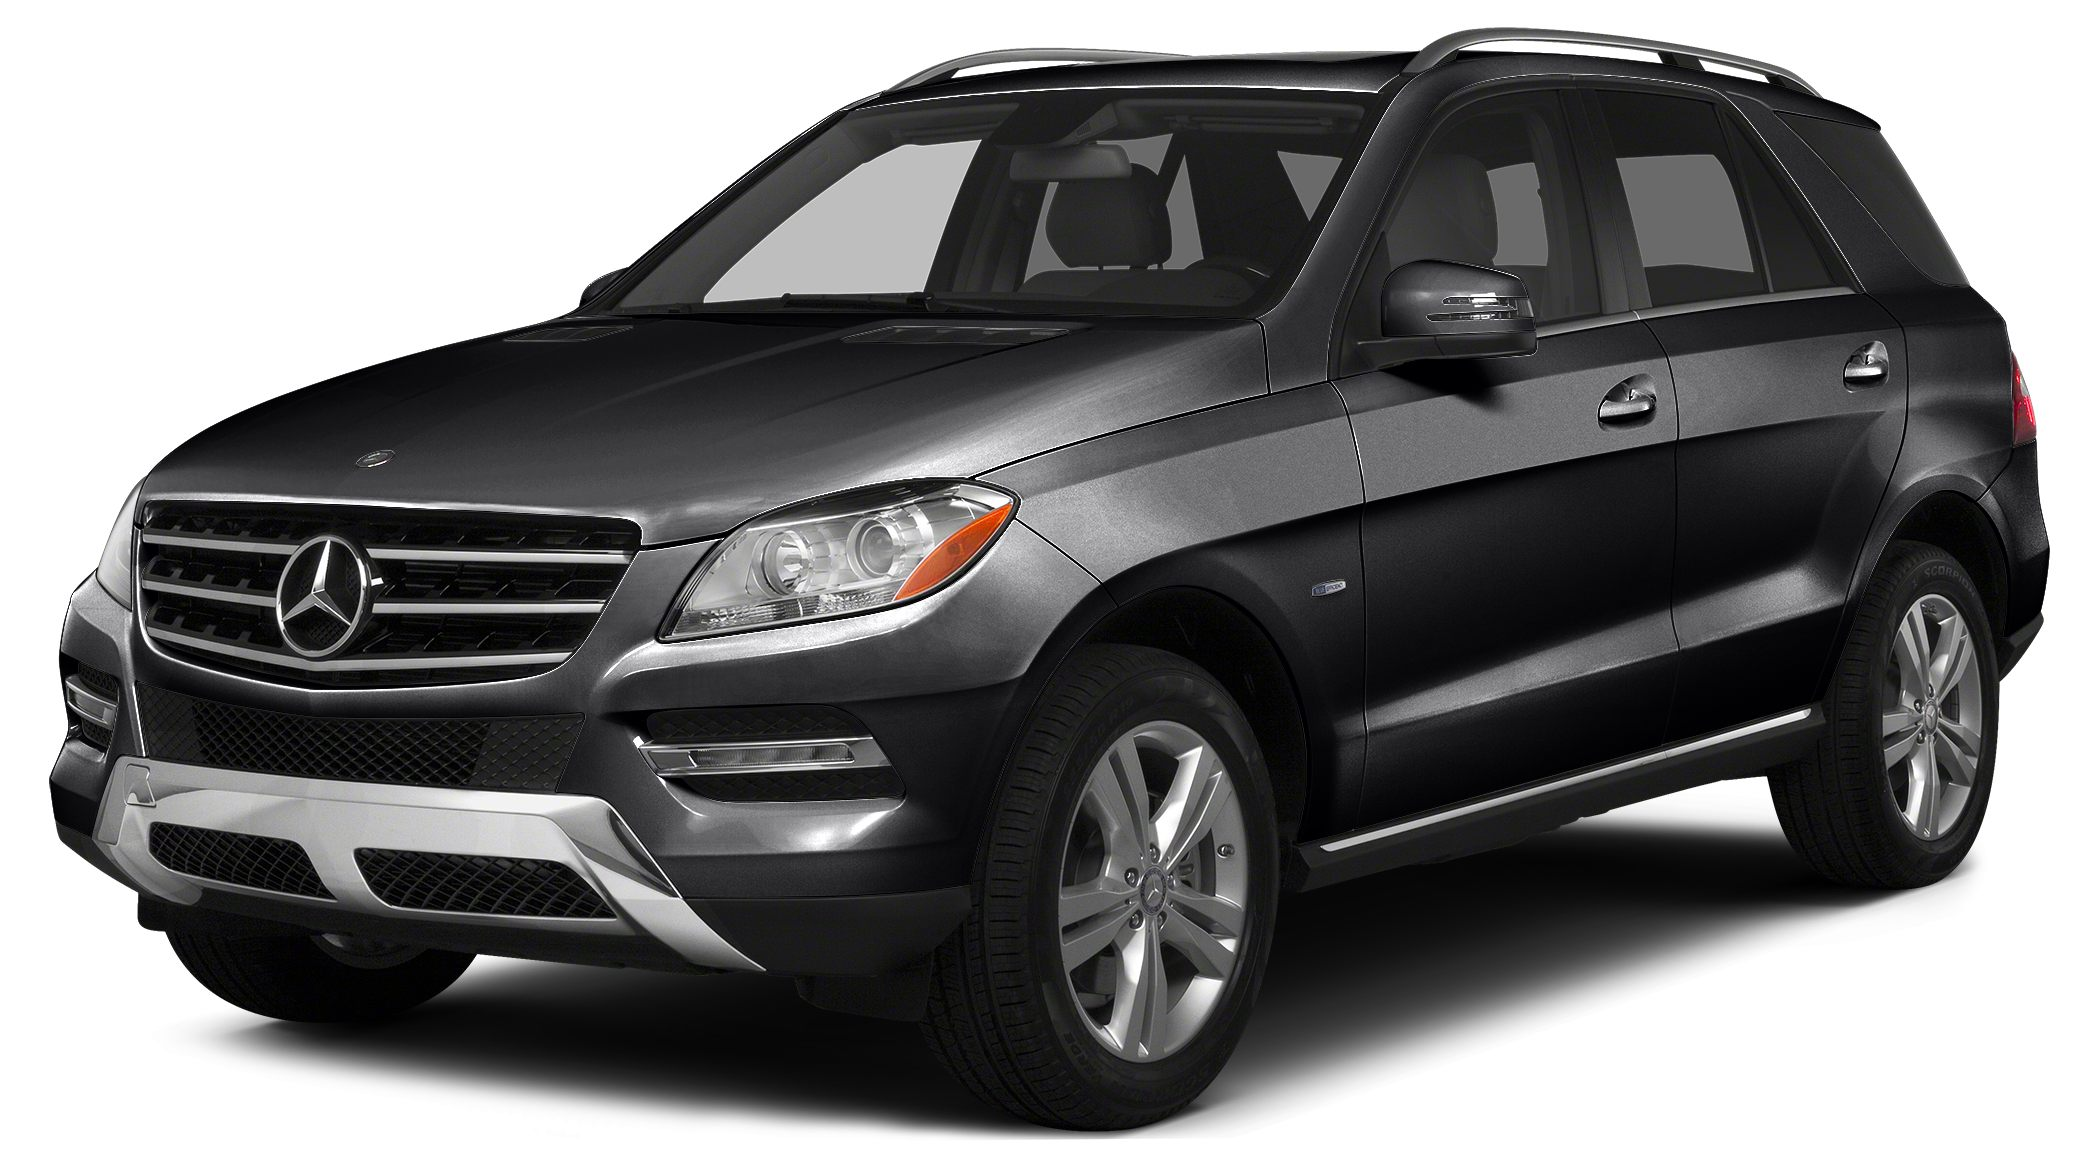 2013 MERCEDES M-Class ML350 4MATIC Haggle Free Price All wheel Drive Navigation Back-Up Camera